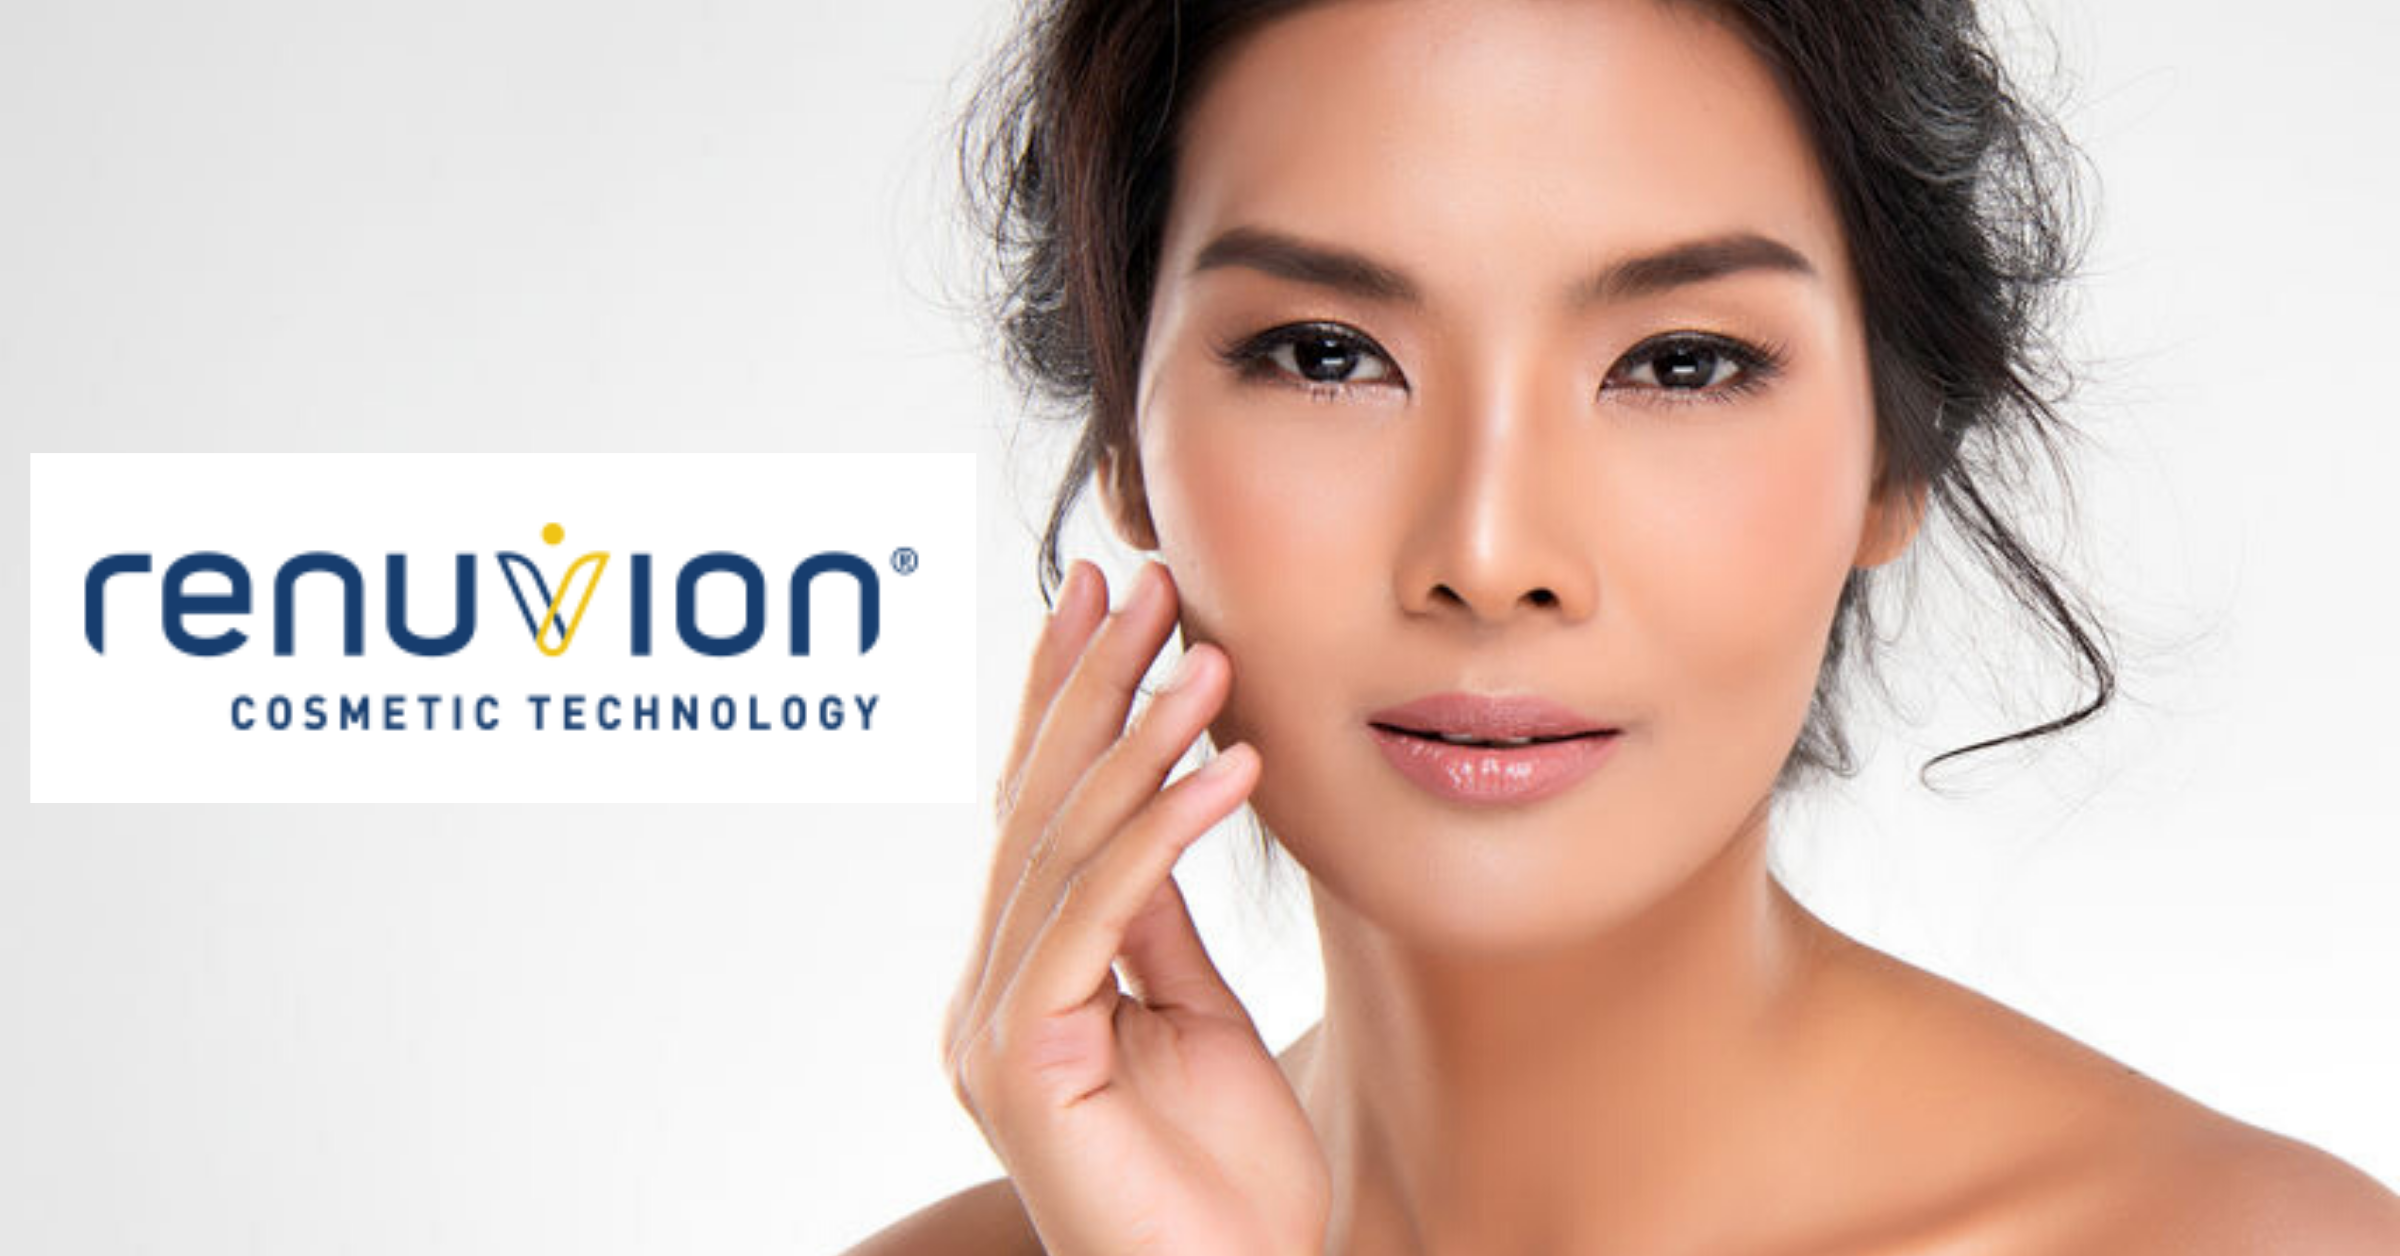 Renuvion RF Device offered at New Youth Medical Spa in Savannah, GA